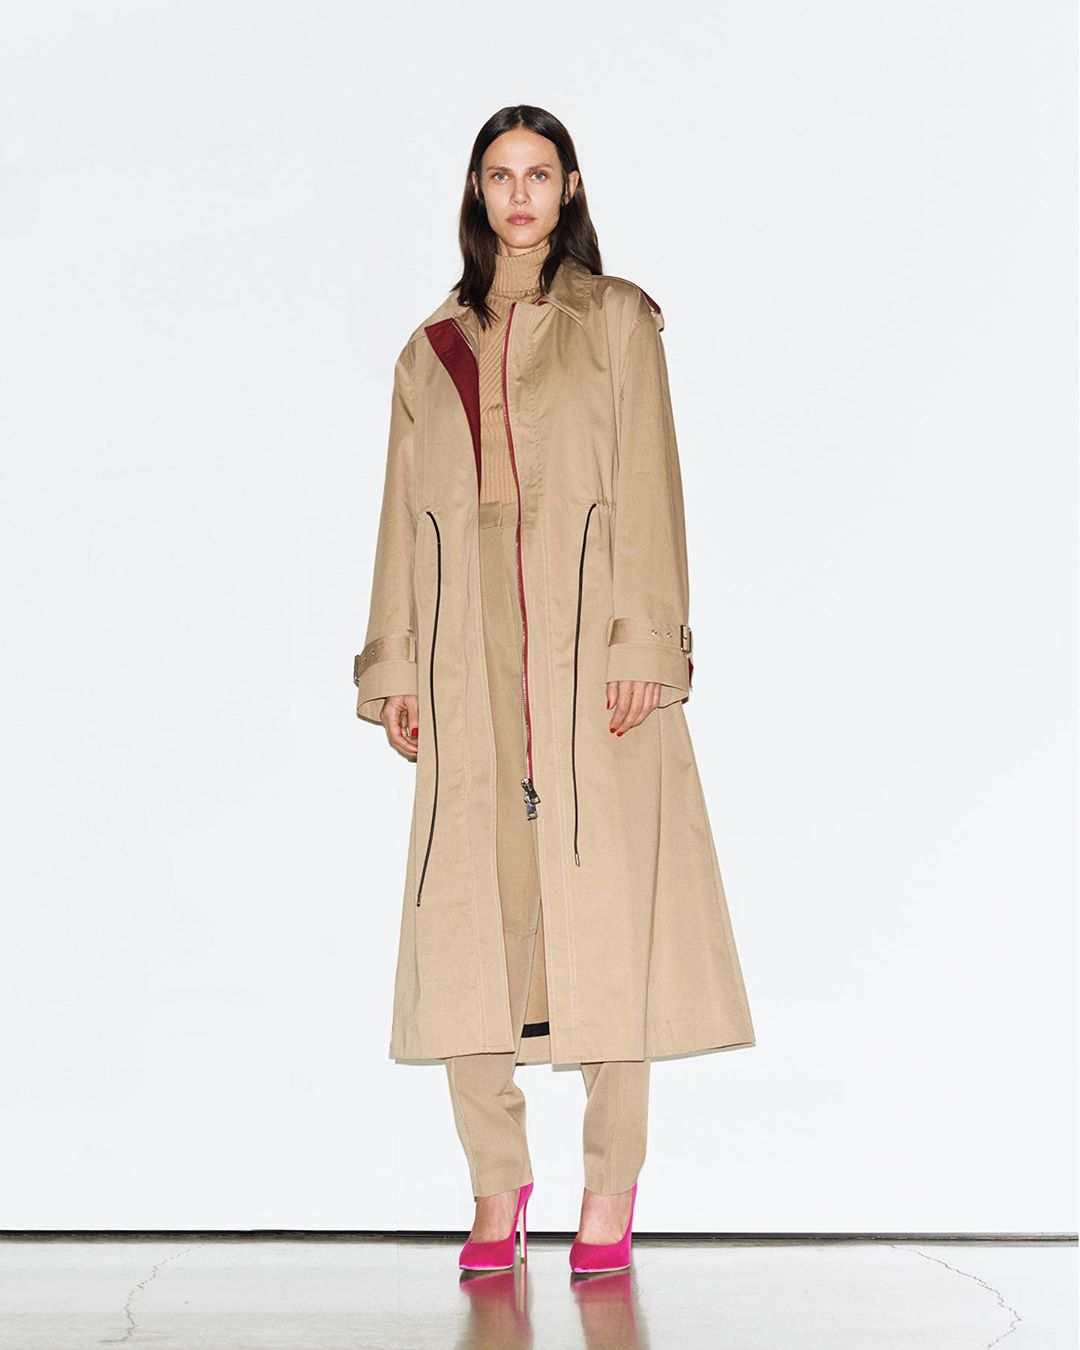 Victoria Beckham Instagram: Rain proof and stylish, the oversized trench from my  collection - an updated cl...